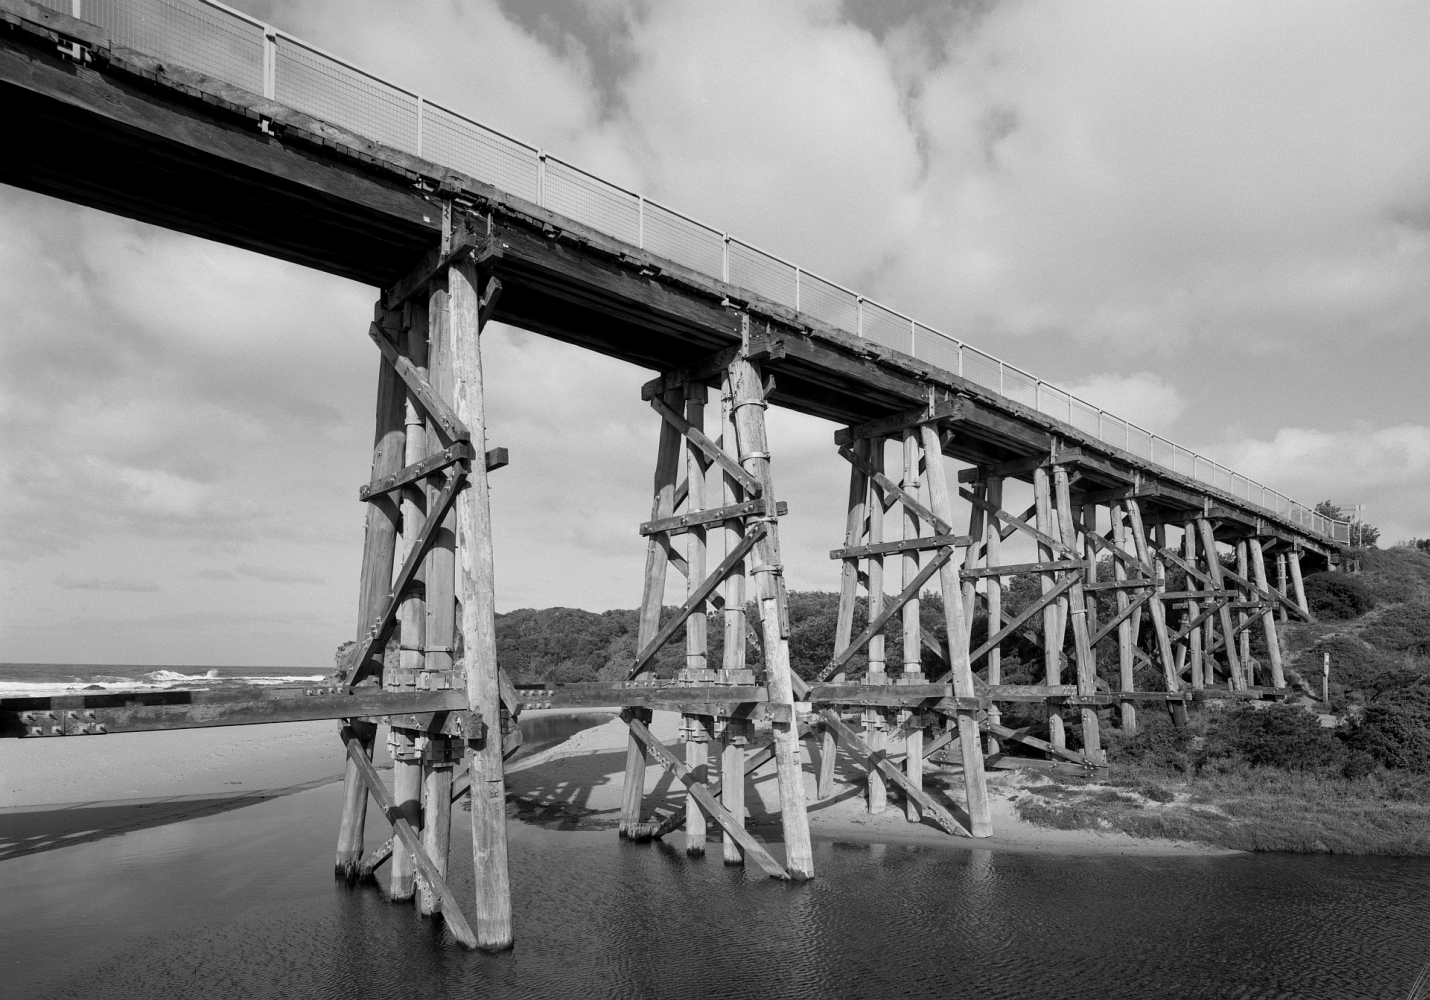 4x5_FP4_Fujinon_65mm_Centre_Filter_Shen_Hao_Kilcunda_Bridge_005_Web.jpg